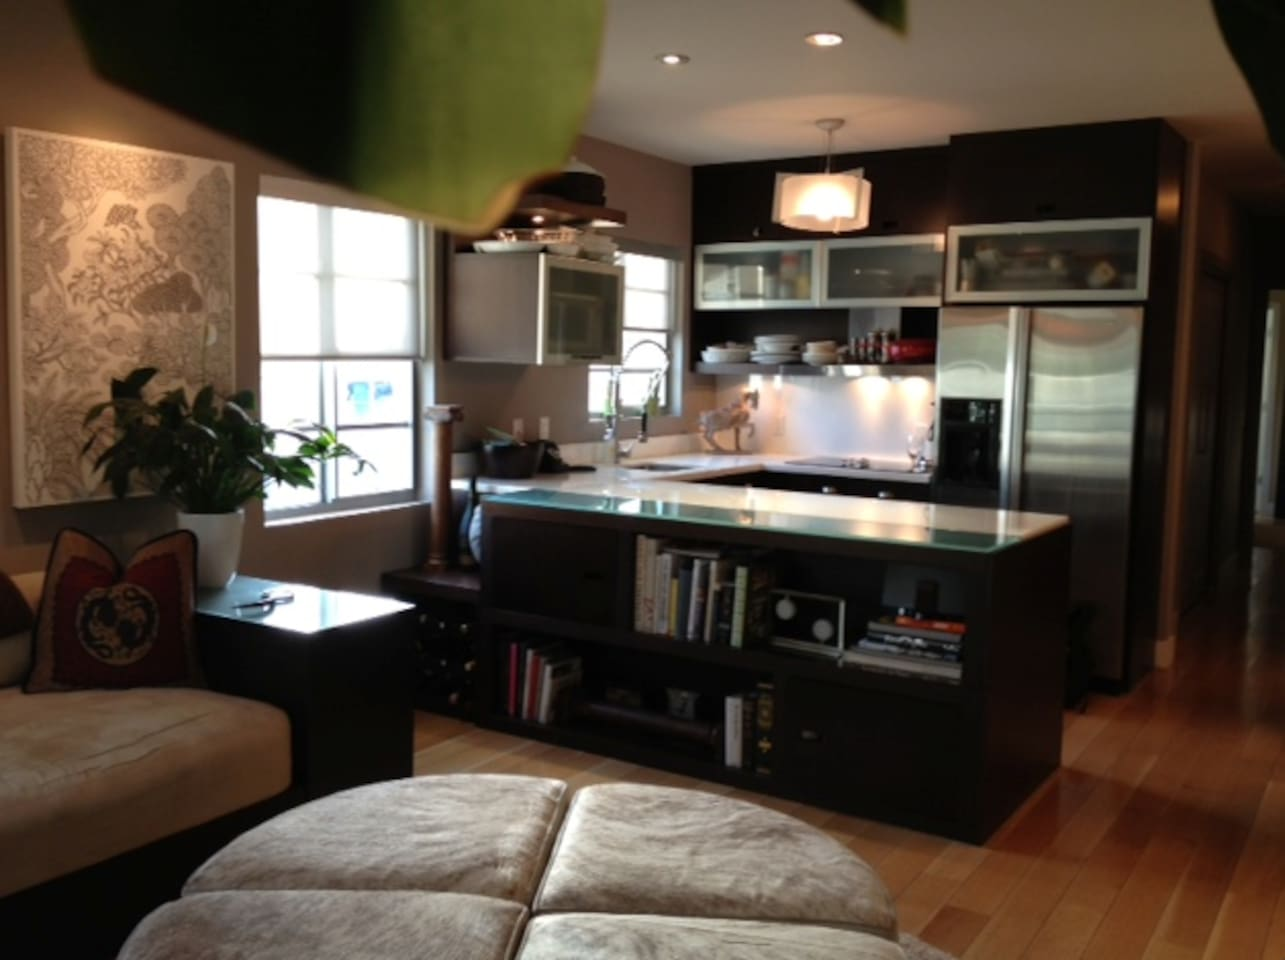 Chefs kitchen with all appliances, gadgets and toys